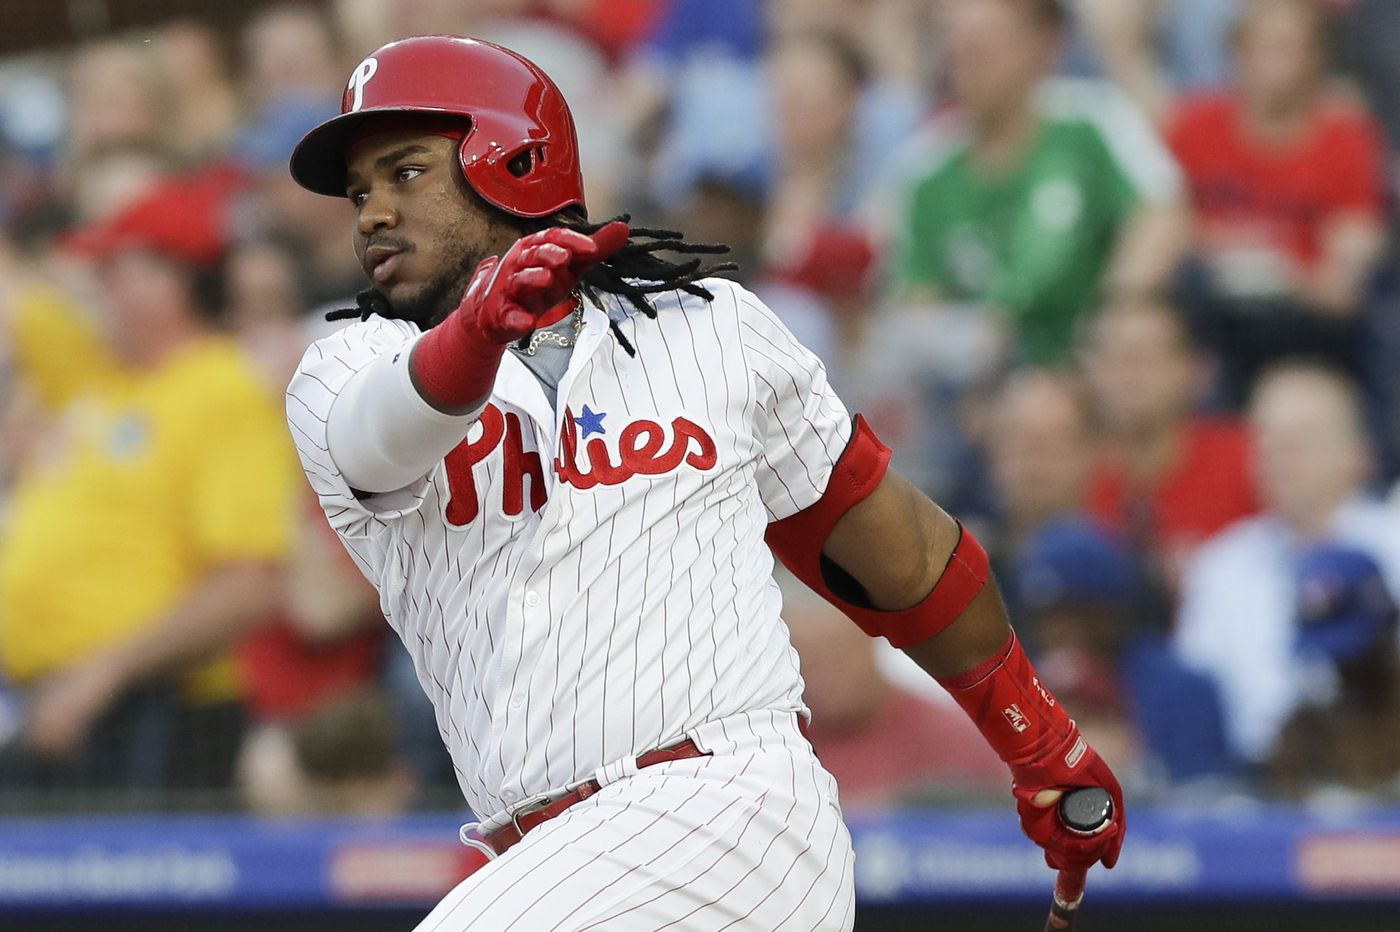 J.P. Crawford's injury gives Maikel Franco yet another chance